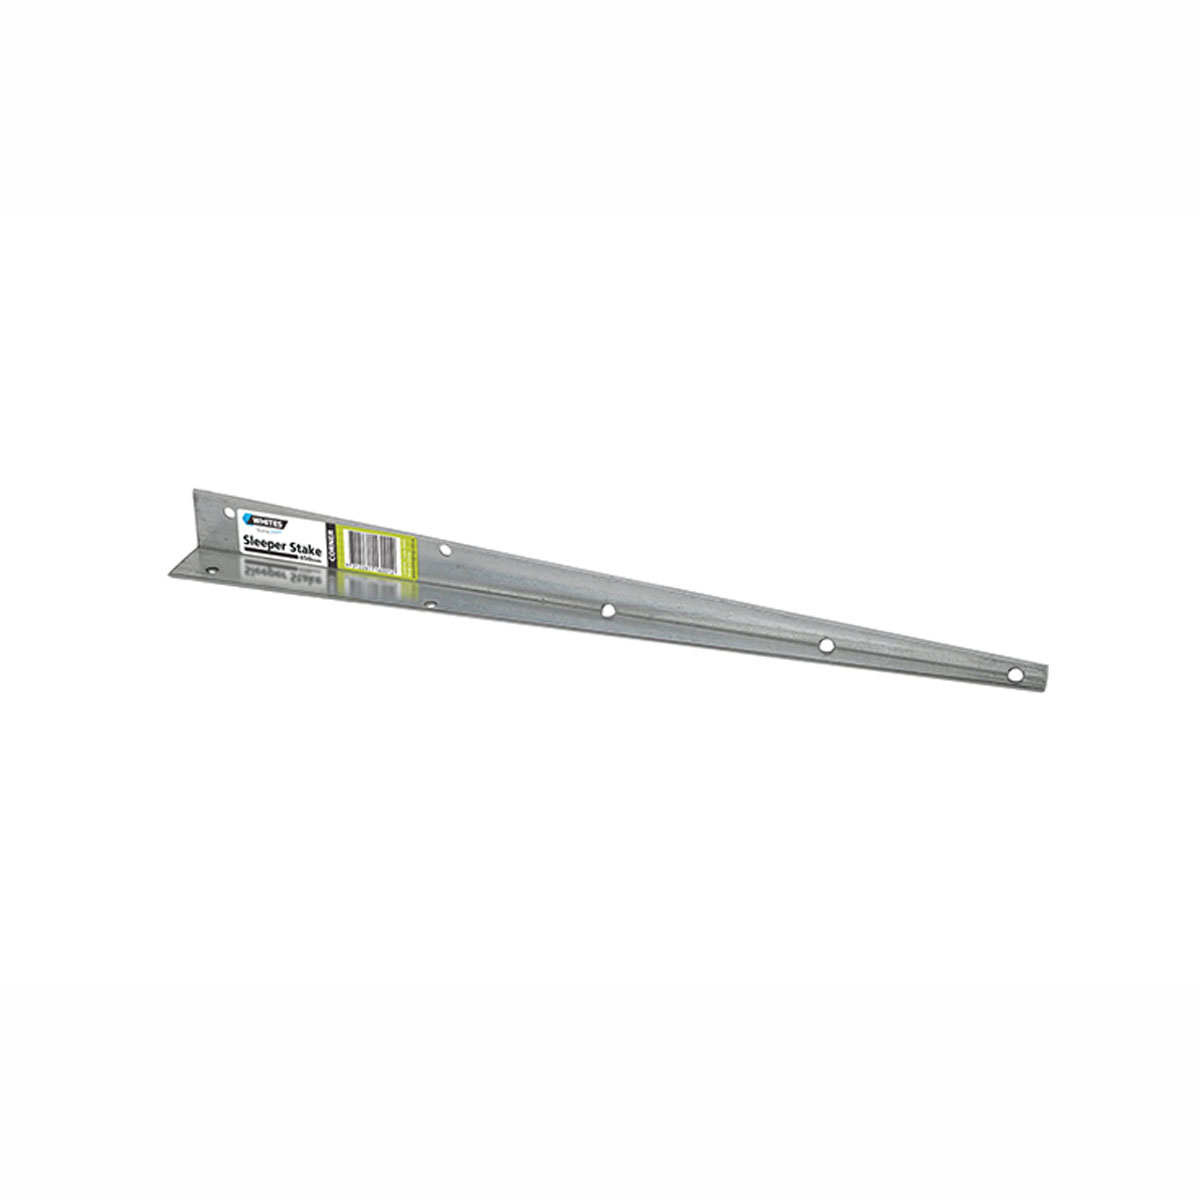 16001 corner sleeper stake 450mm